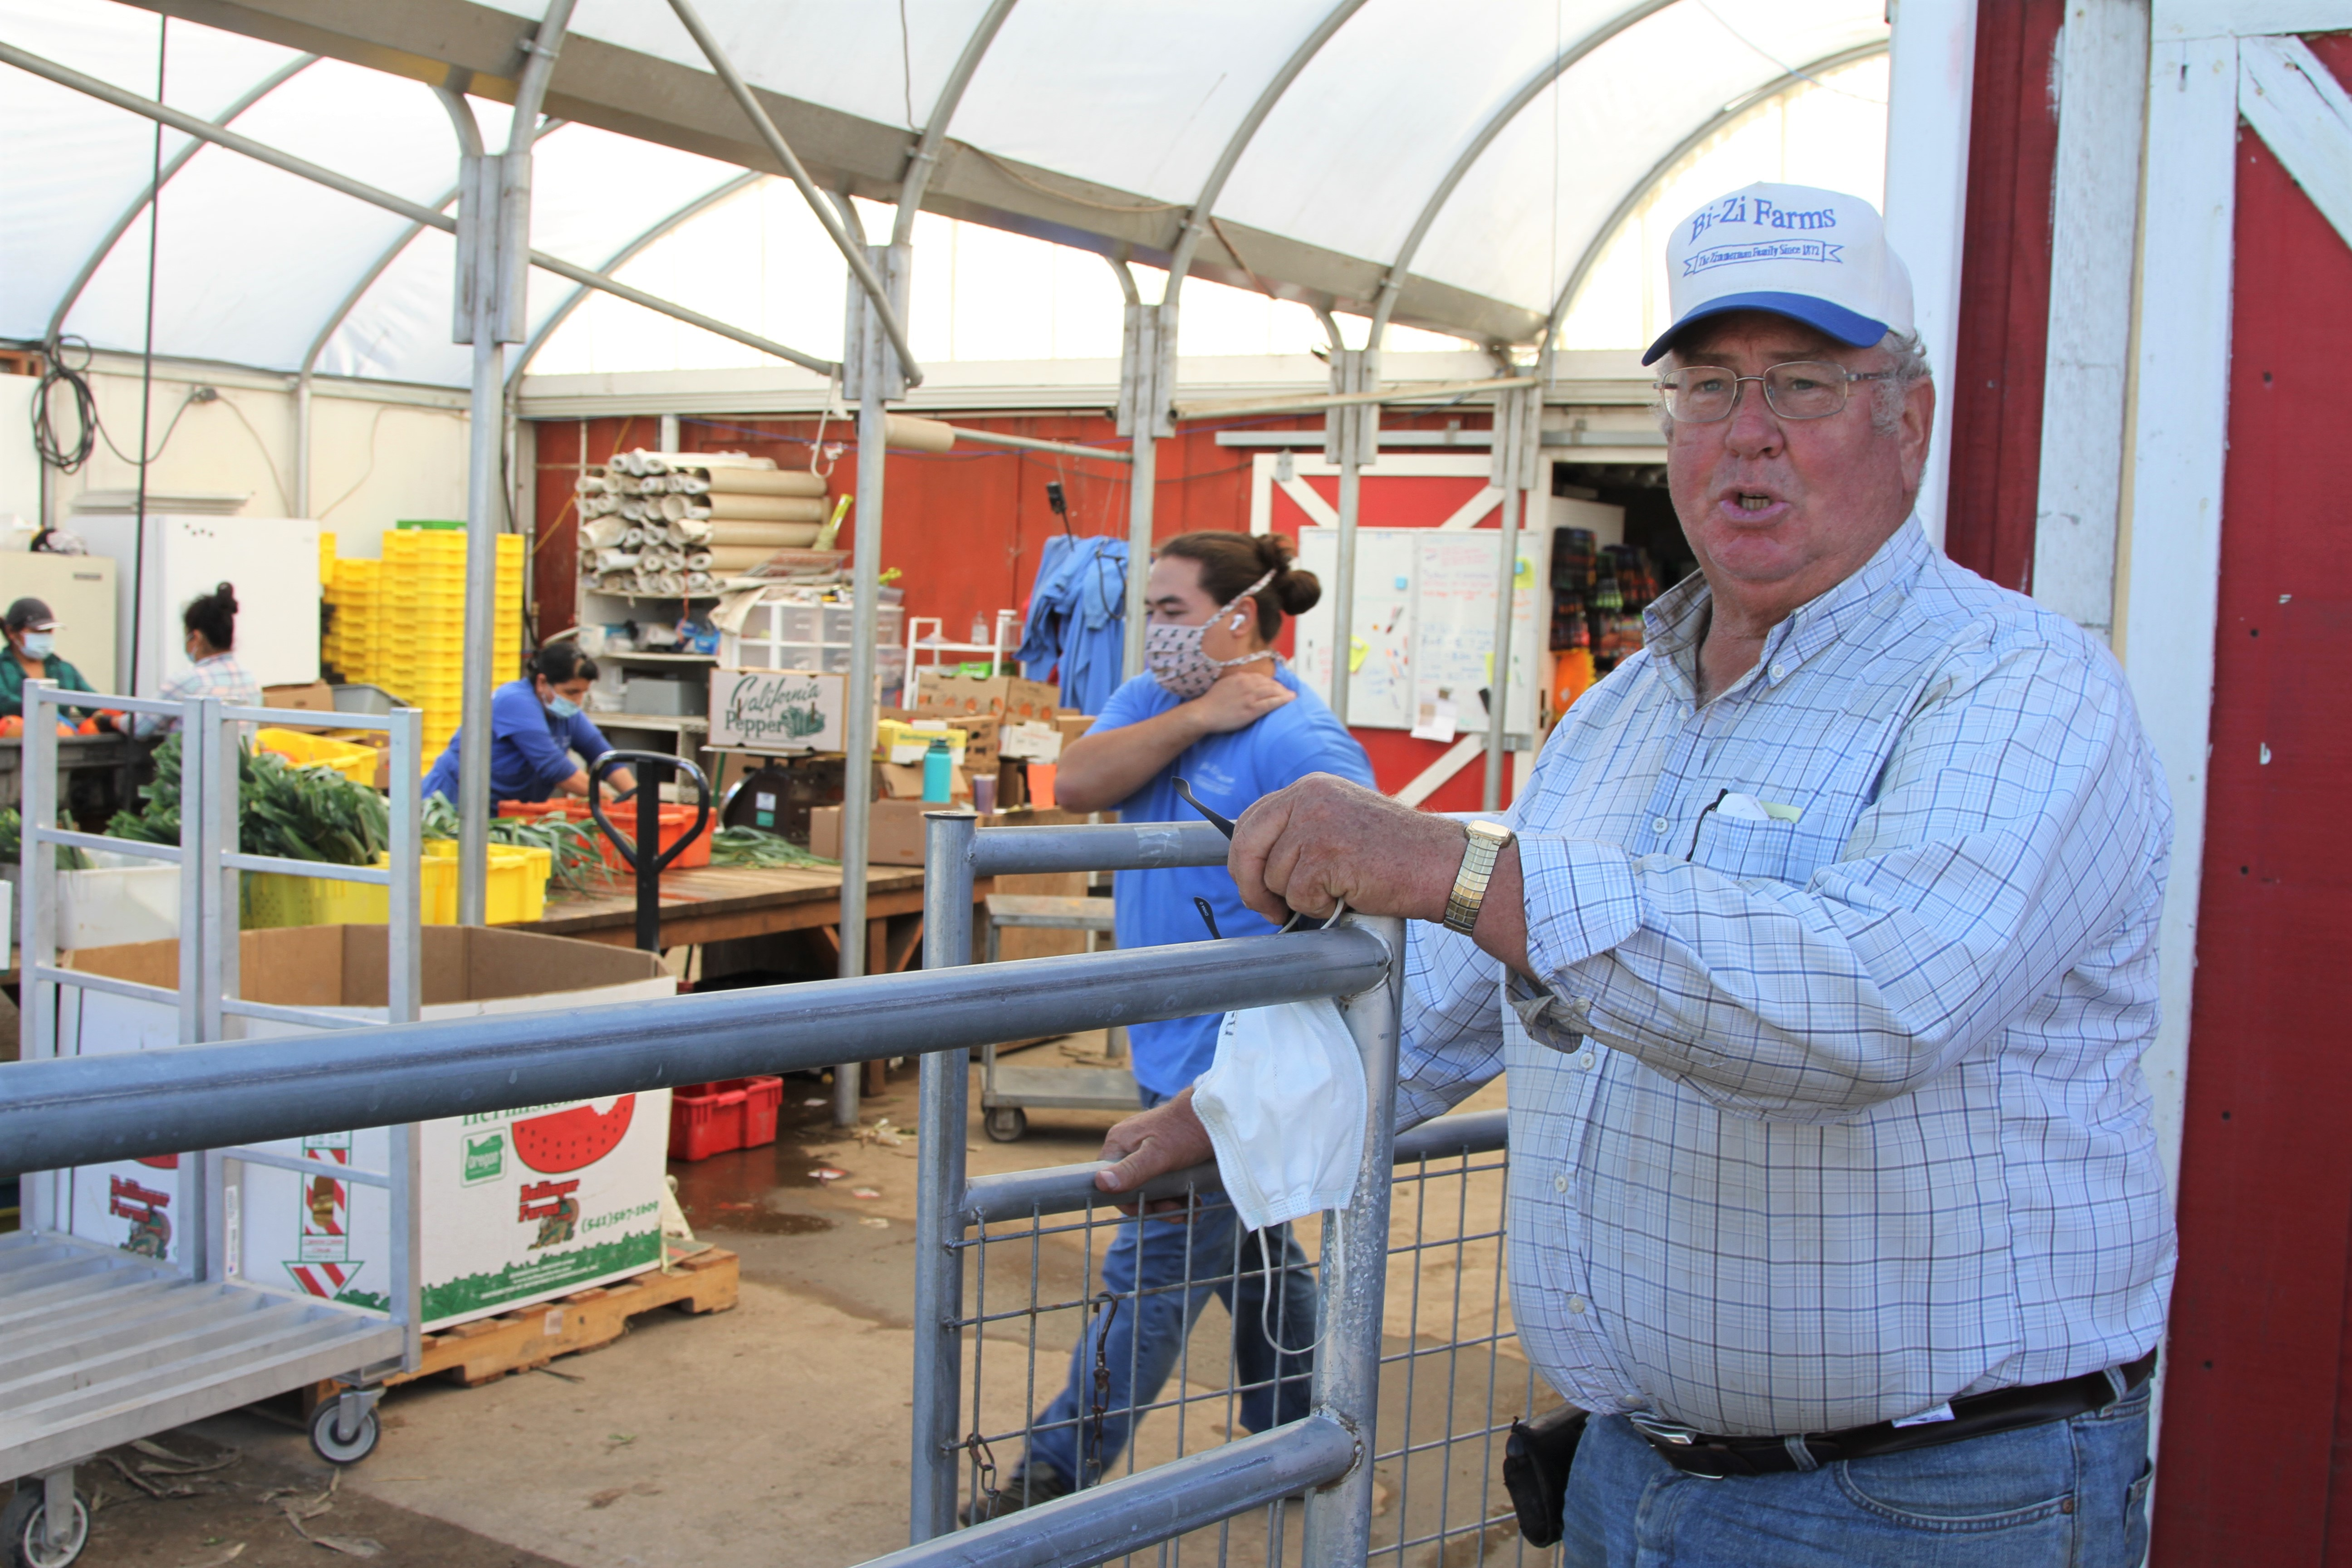 Pumpkin patch owner Bill Zimmerman expects half the visitors he had last year. But his roadside farm market seems to be picking up the slack, because everyone's at home and wants to buy fresh produce.